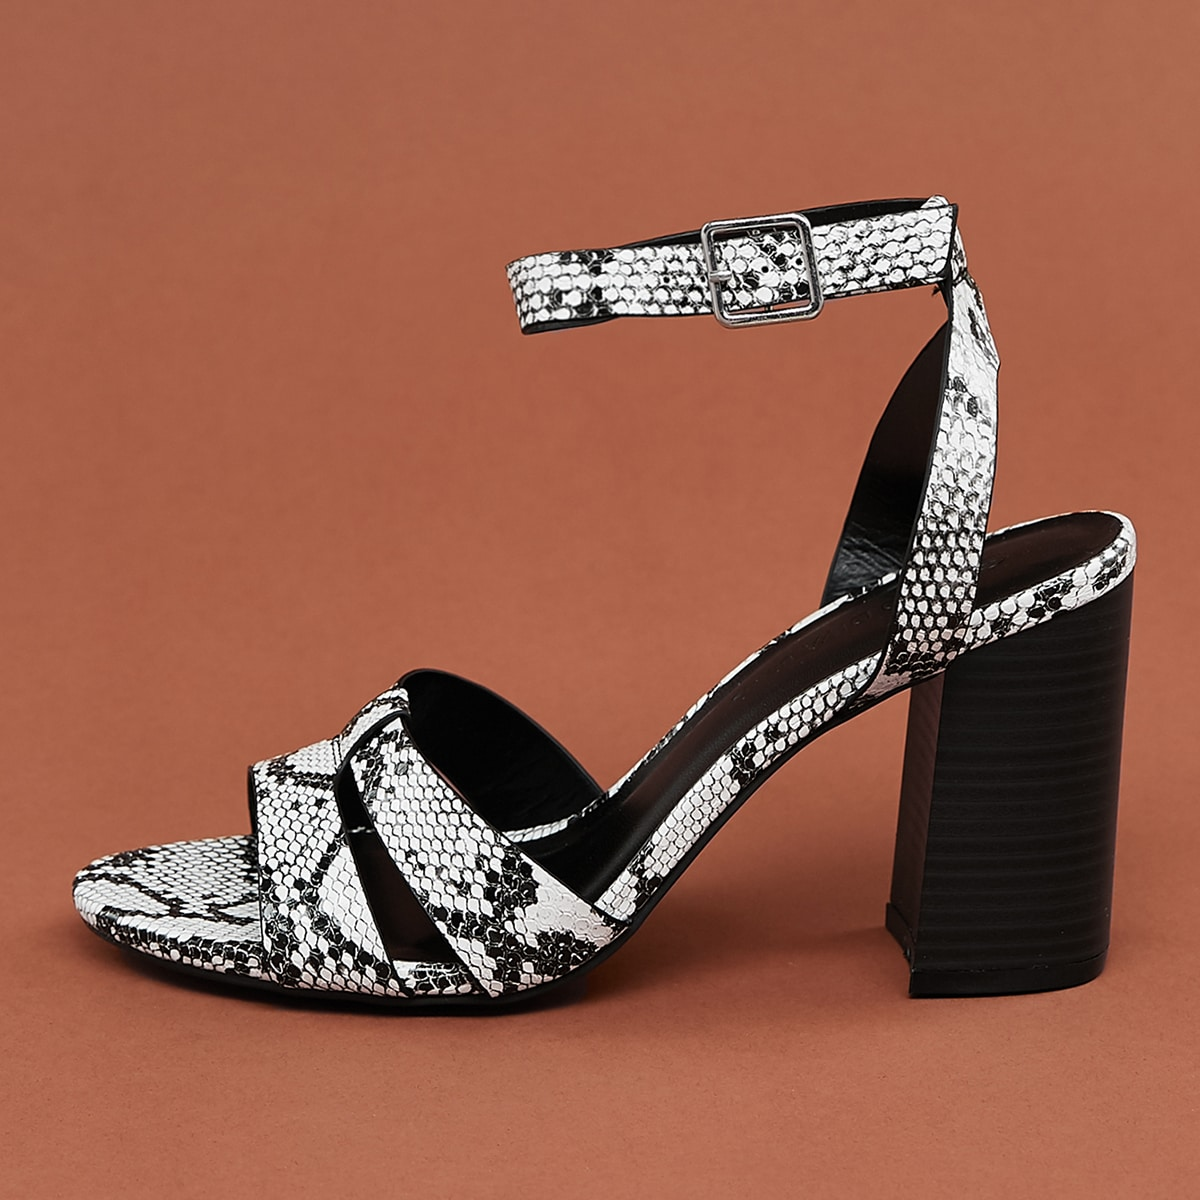 SHEIN / Dual Cut Out Ankle Strap Block Heel Snake Sandals